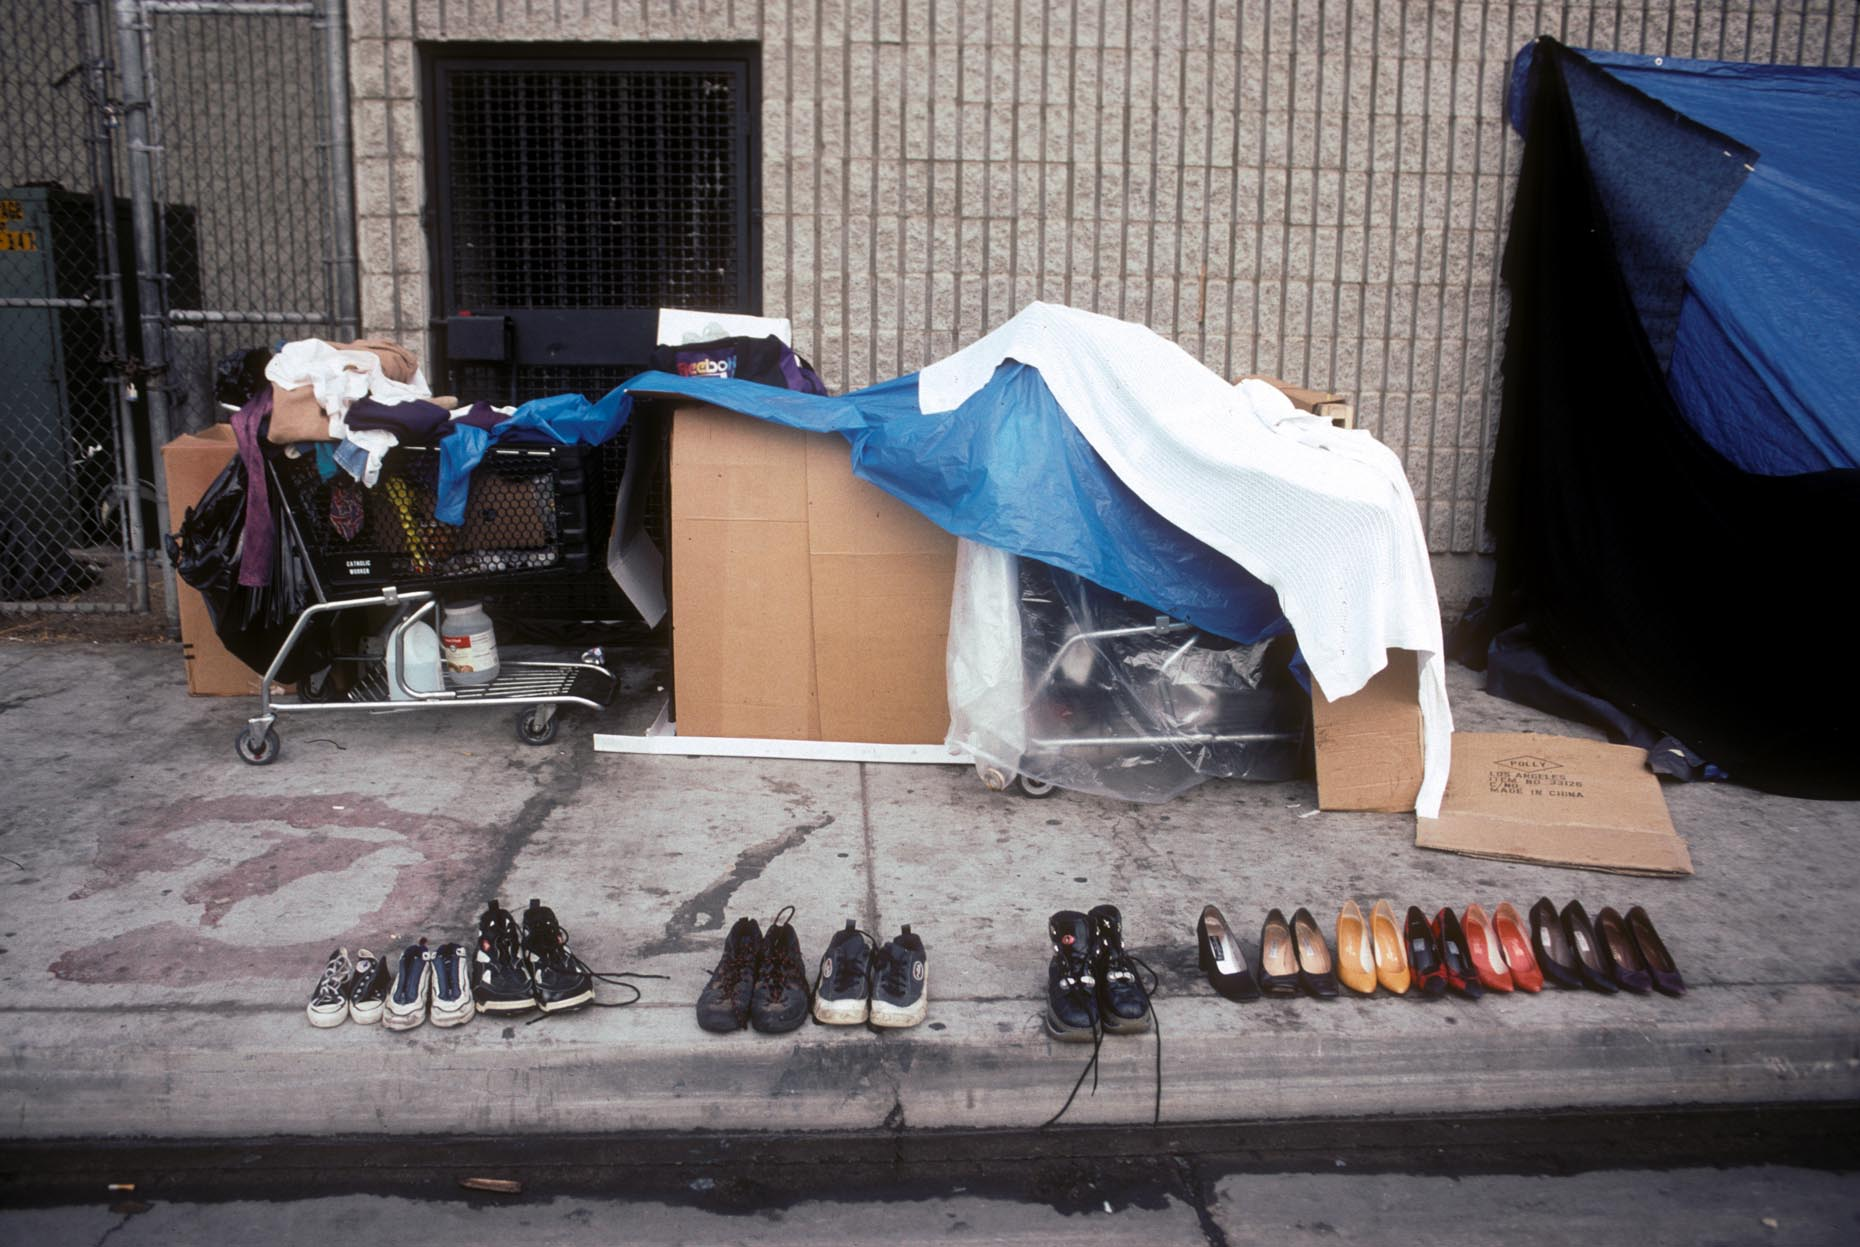 12_Gladys Ave-DUP2. S. of 6th St. Skid Row, 1999_.jpg